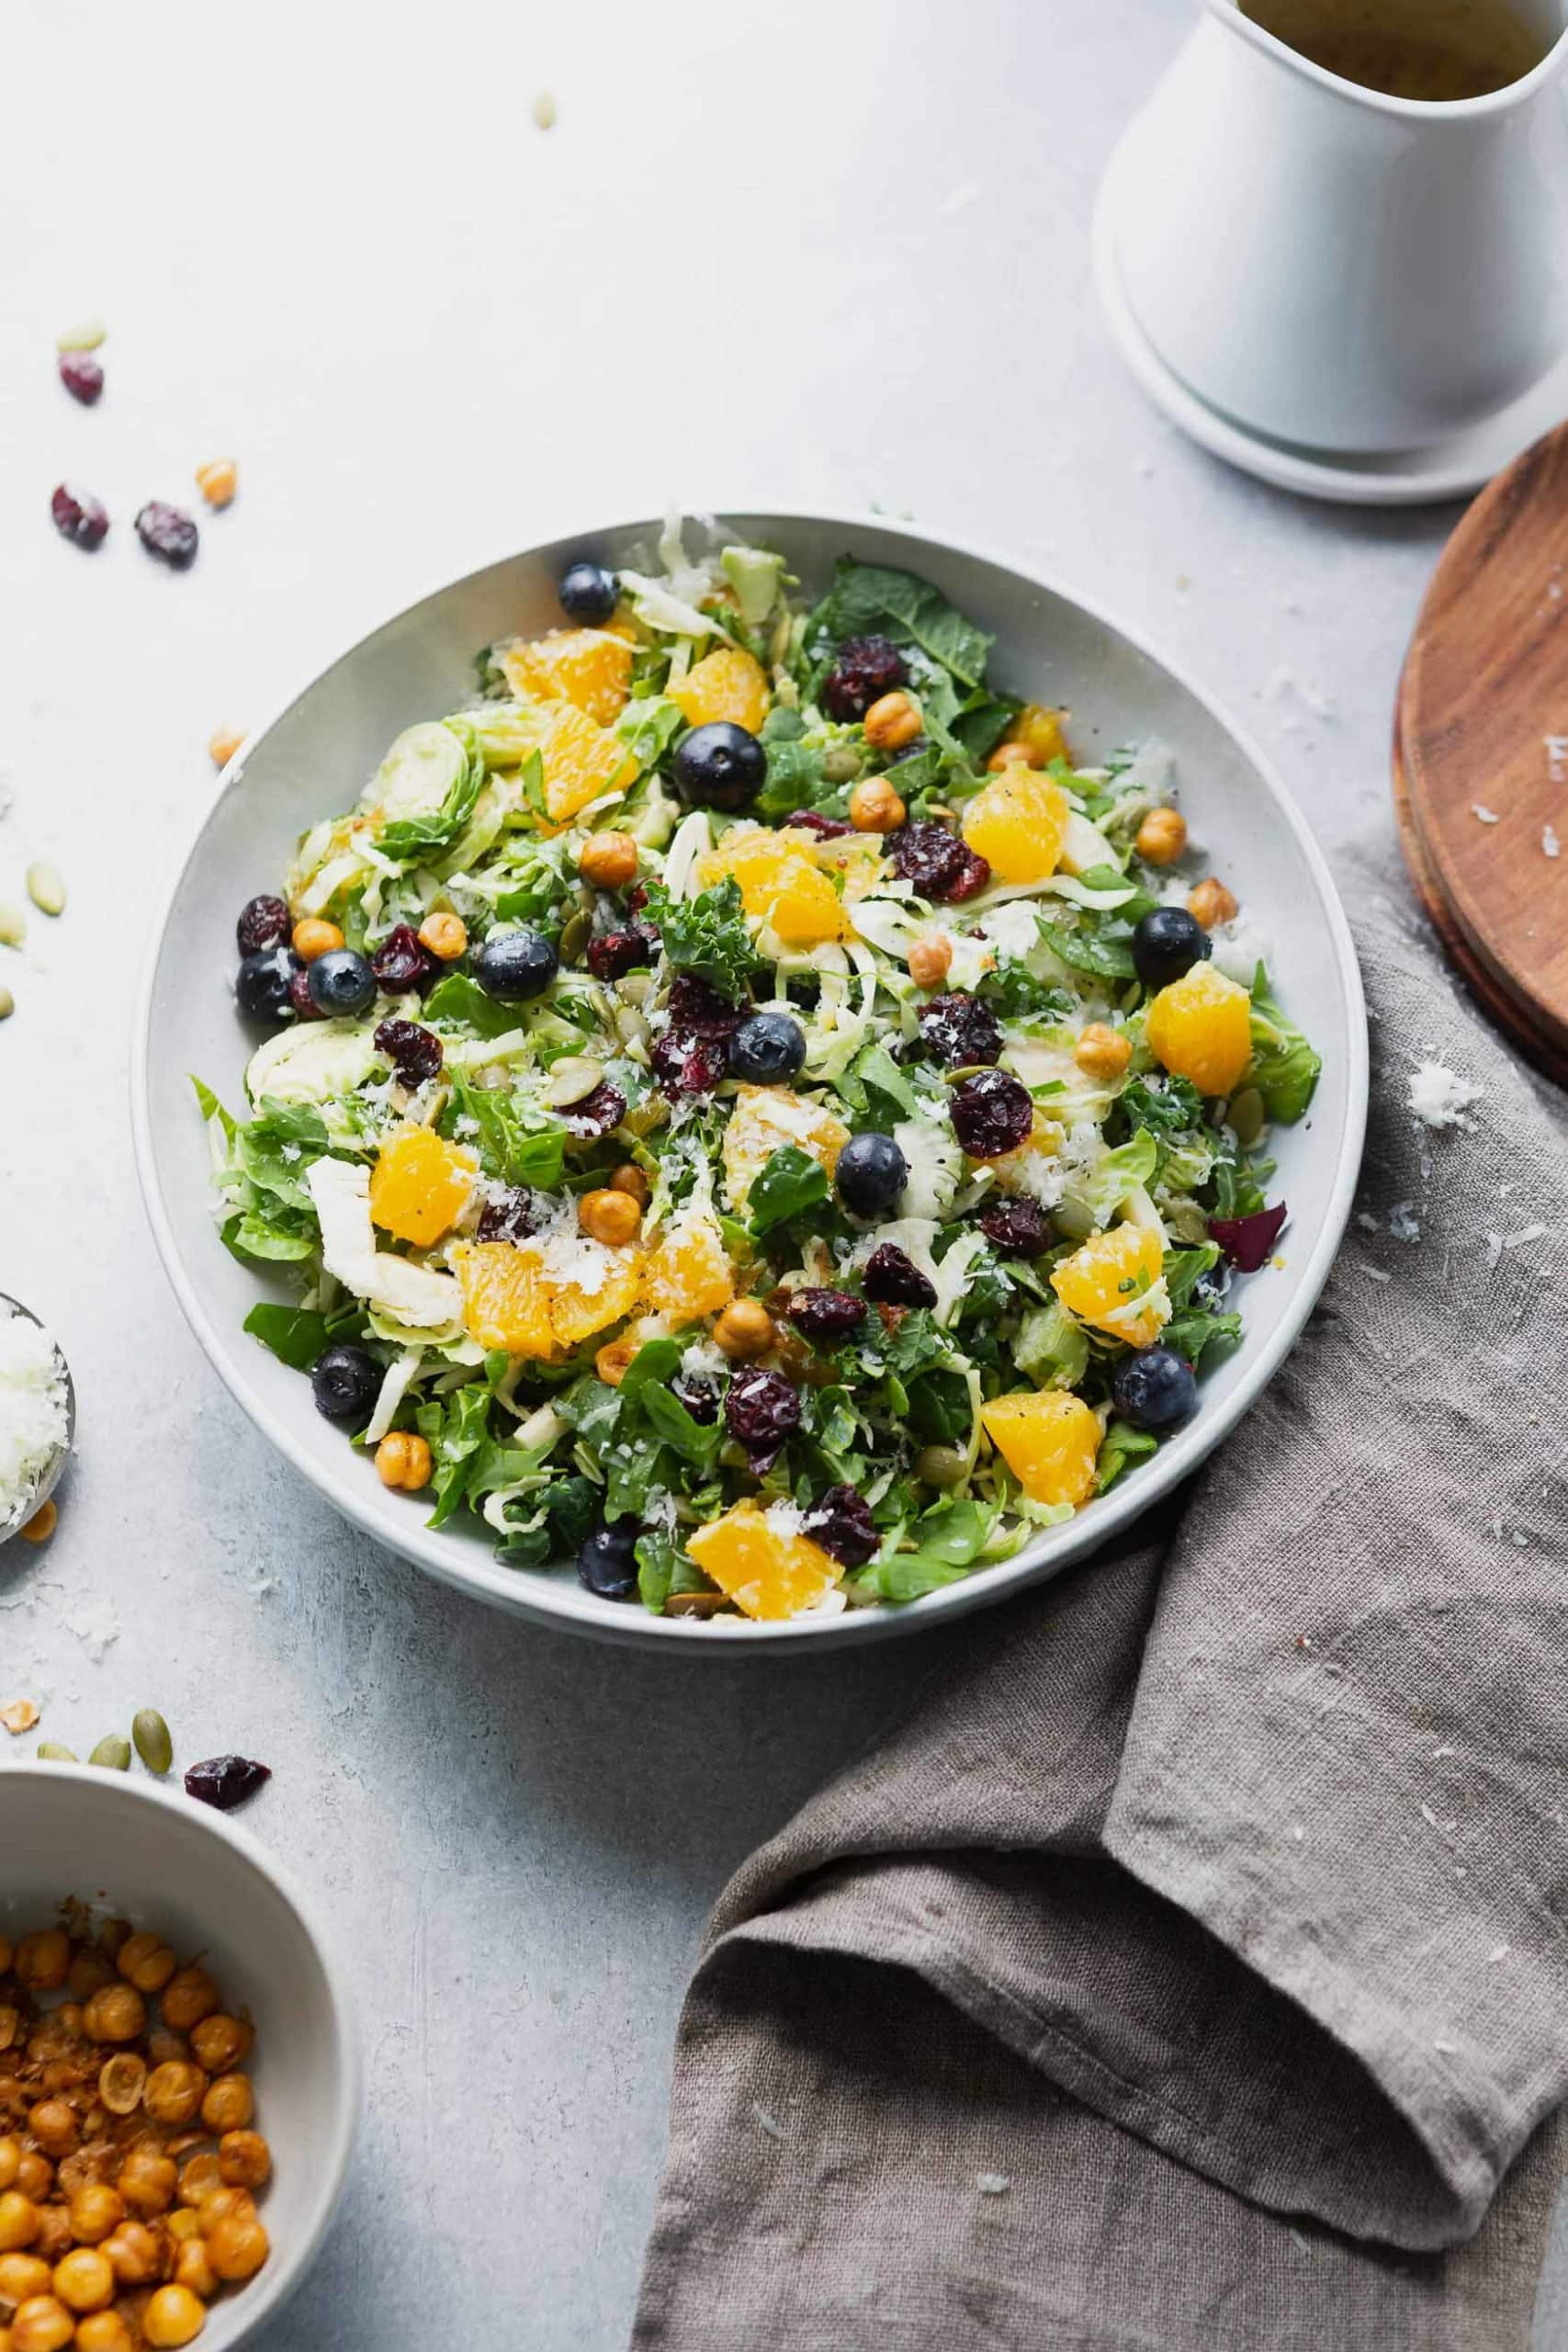 a photo taken above a serving bowl full of mixed greens topped with chunks of oranges, blueberries, craisins, roasted chickpeas and manchego cheese.